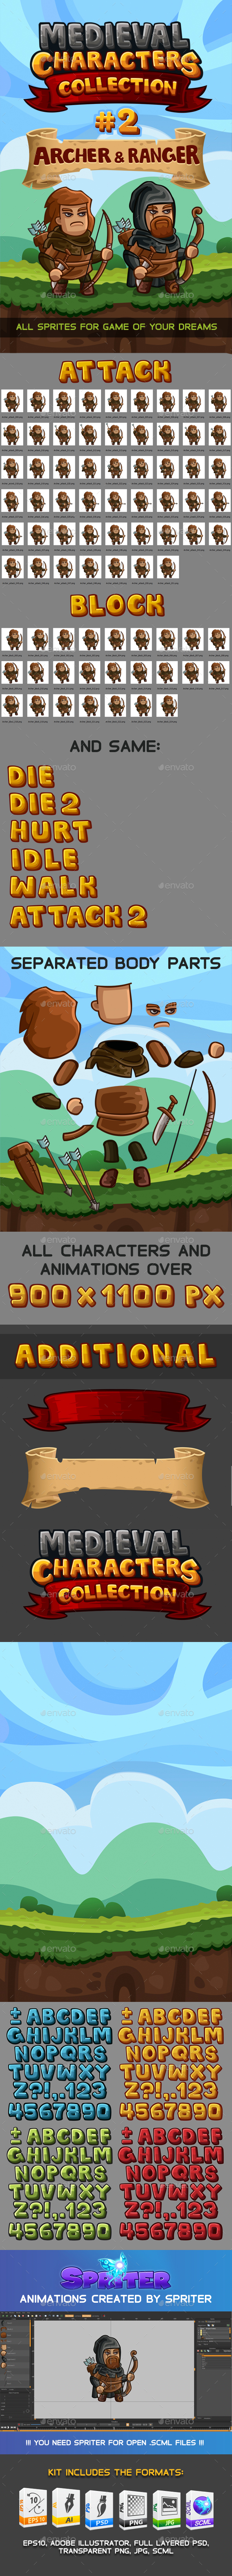 Medieval Game Sprites Characters Collection #2 - Sprites Game Assets